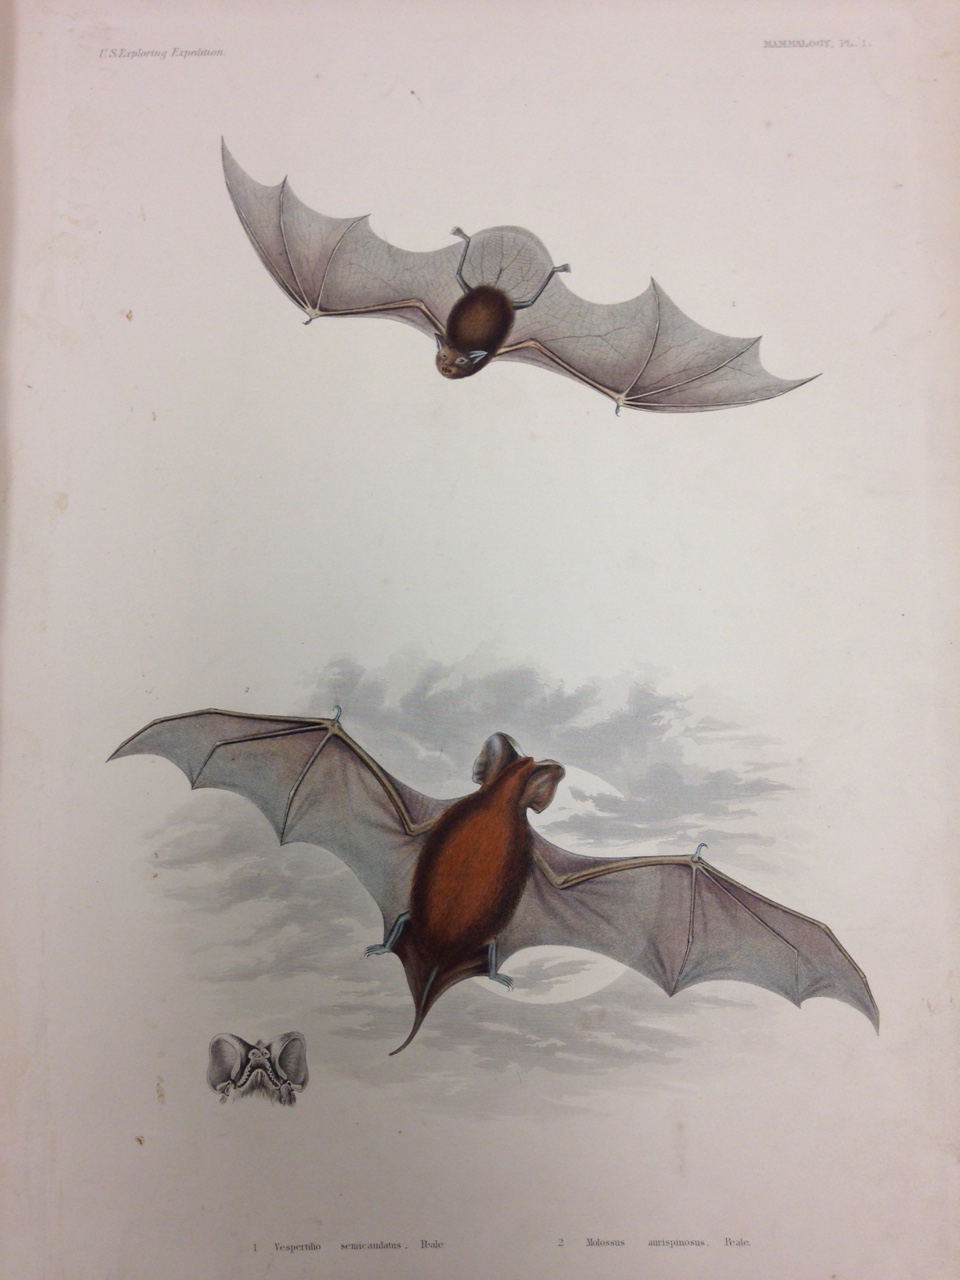 Mammalogy, Plate 1: Vespertilio semicaudatus (also known as Emballonura semicaudata semicaudata, Pacific sheath-tailed bat). – This little bat likes caves, but there appears to be no information about what they like to eat… mwahahahahaaa!